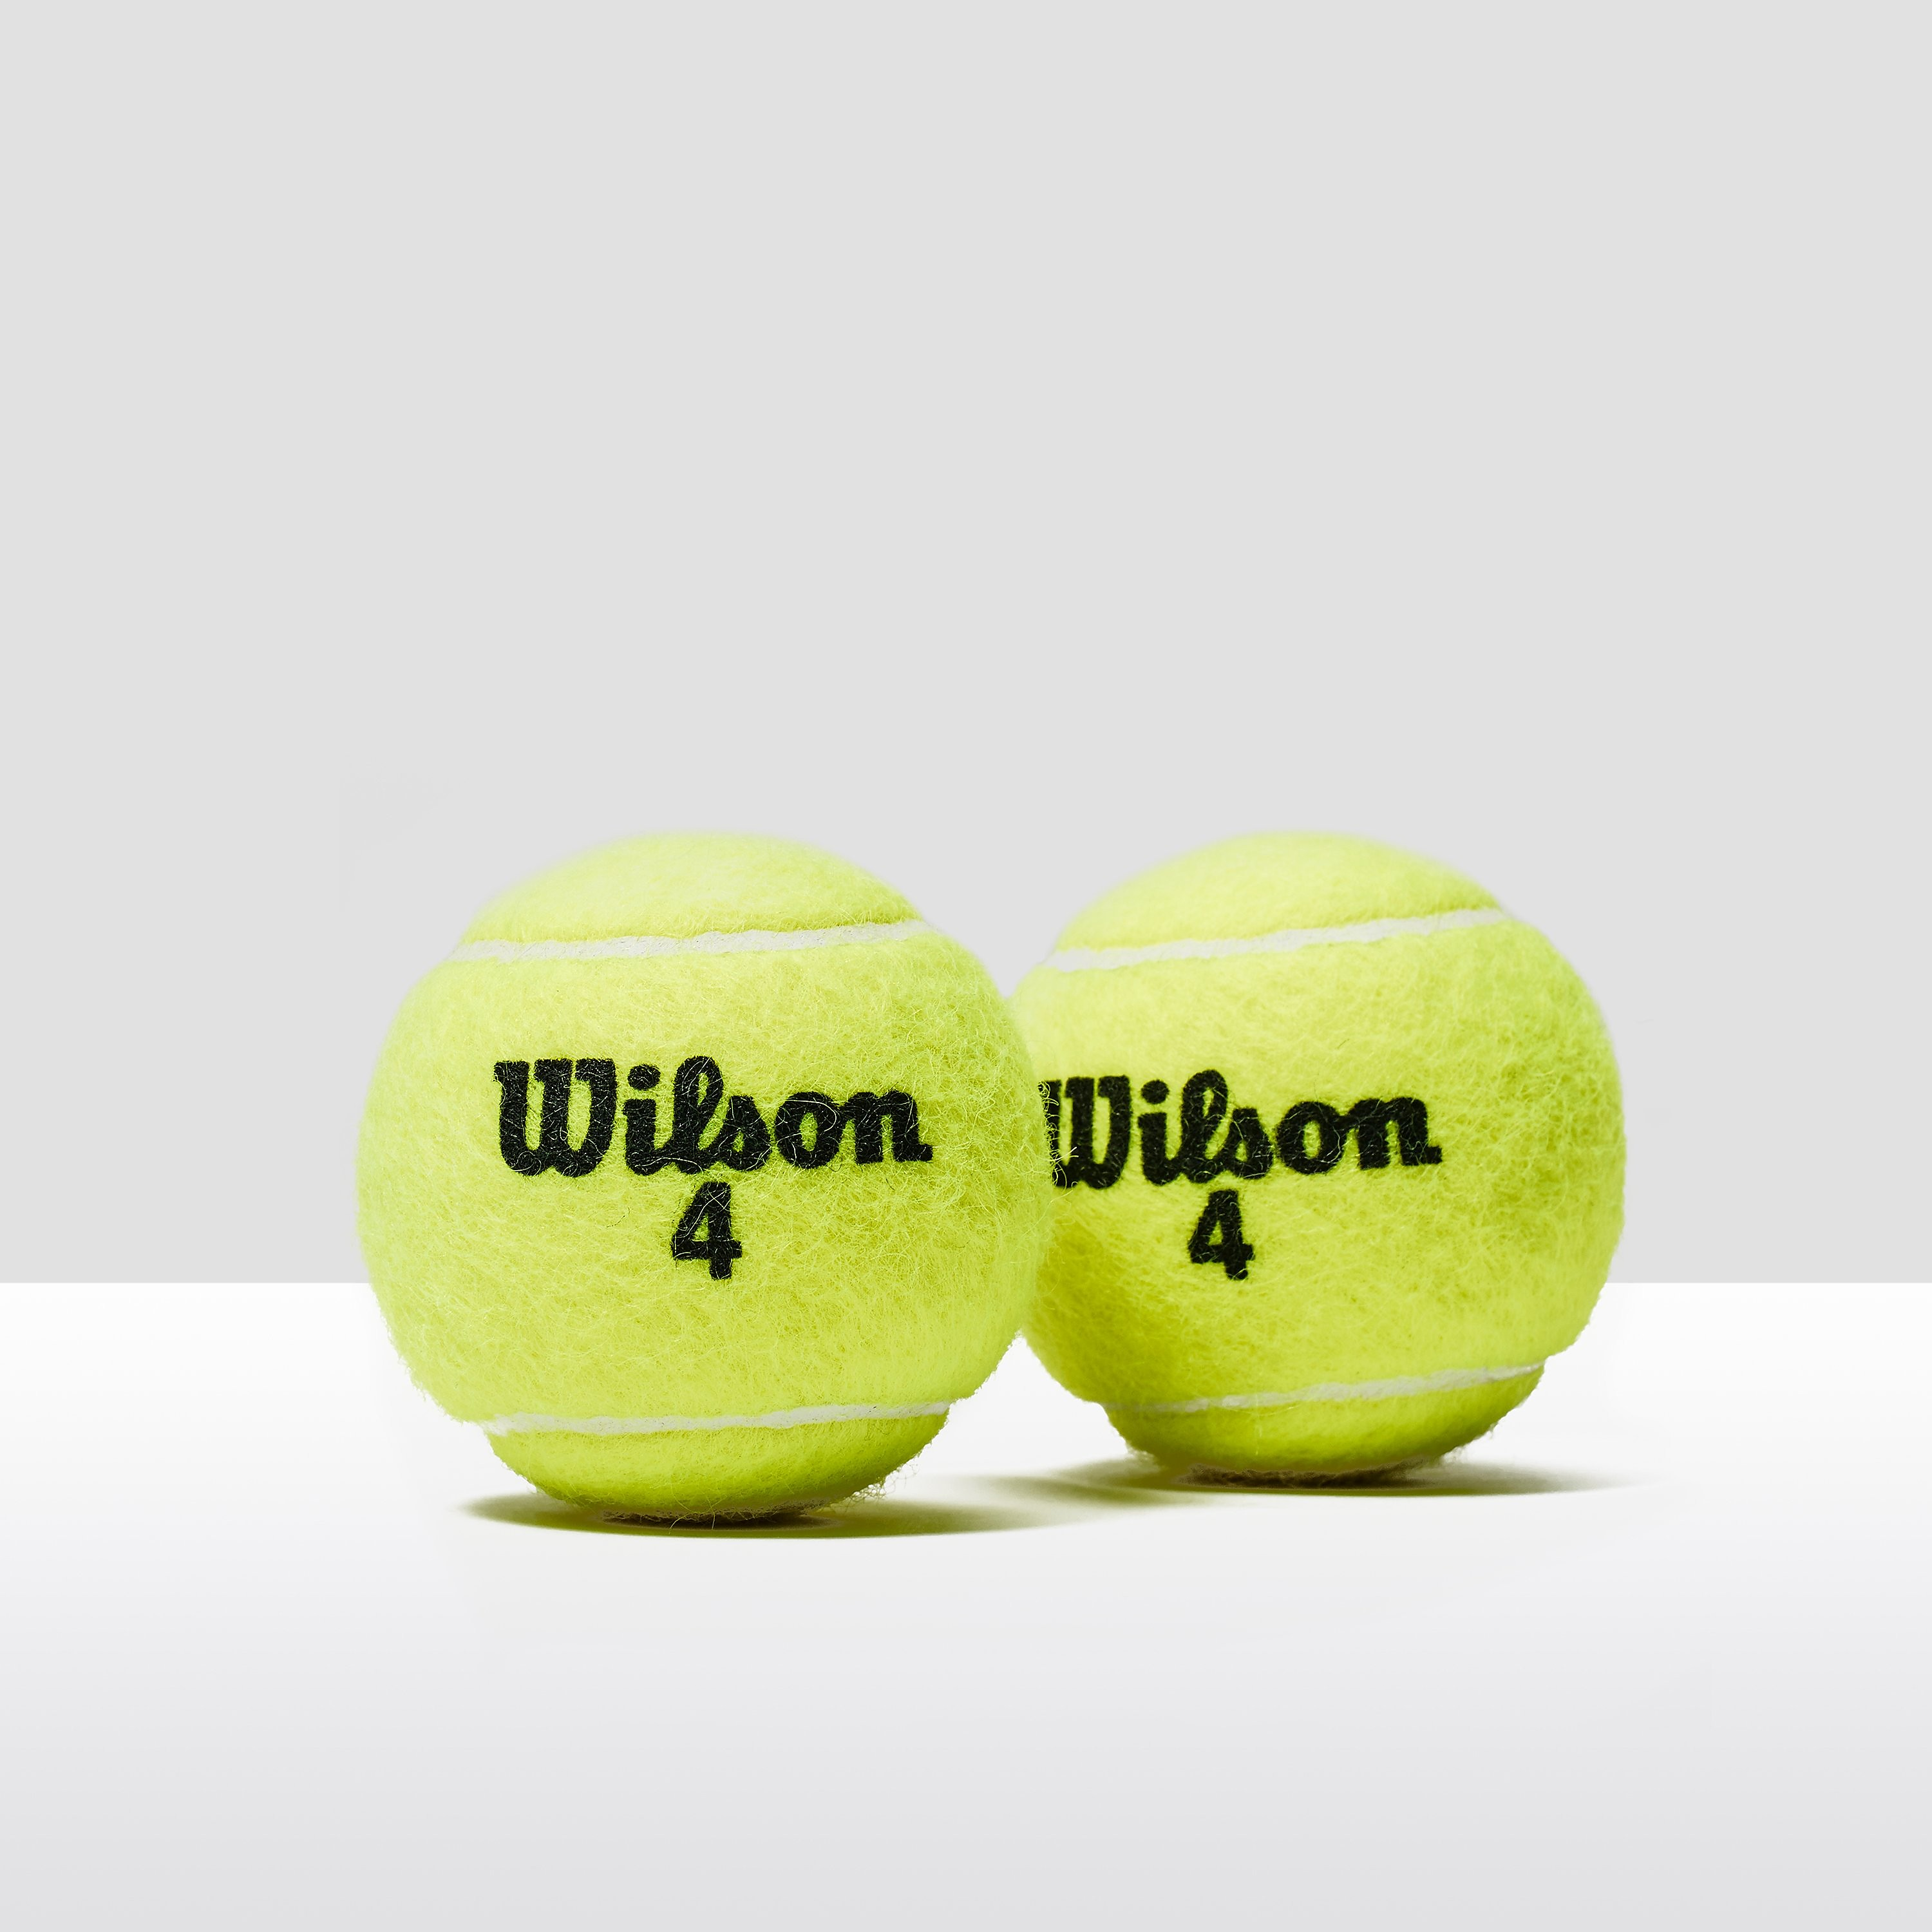 Wilson Australian Open Tennis Balls (4 Ball Can)